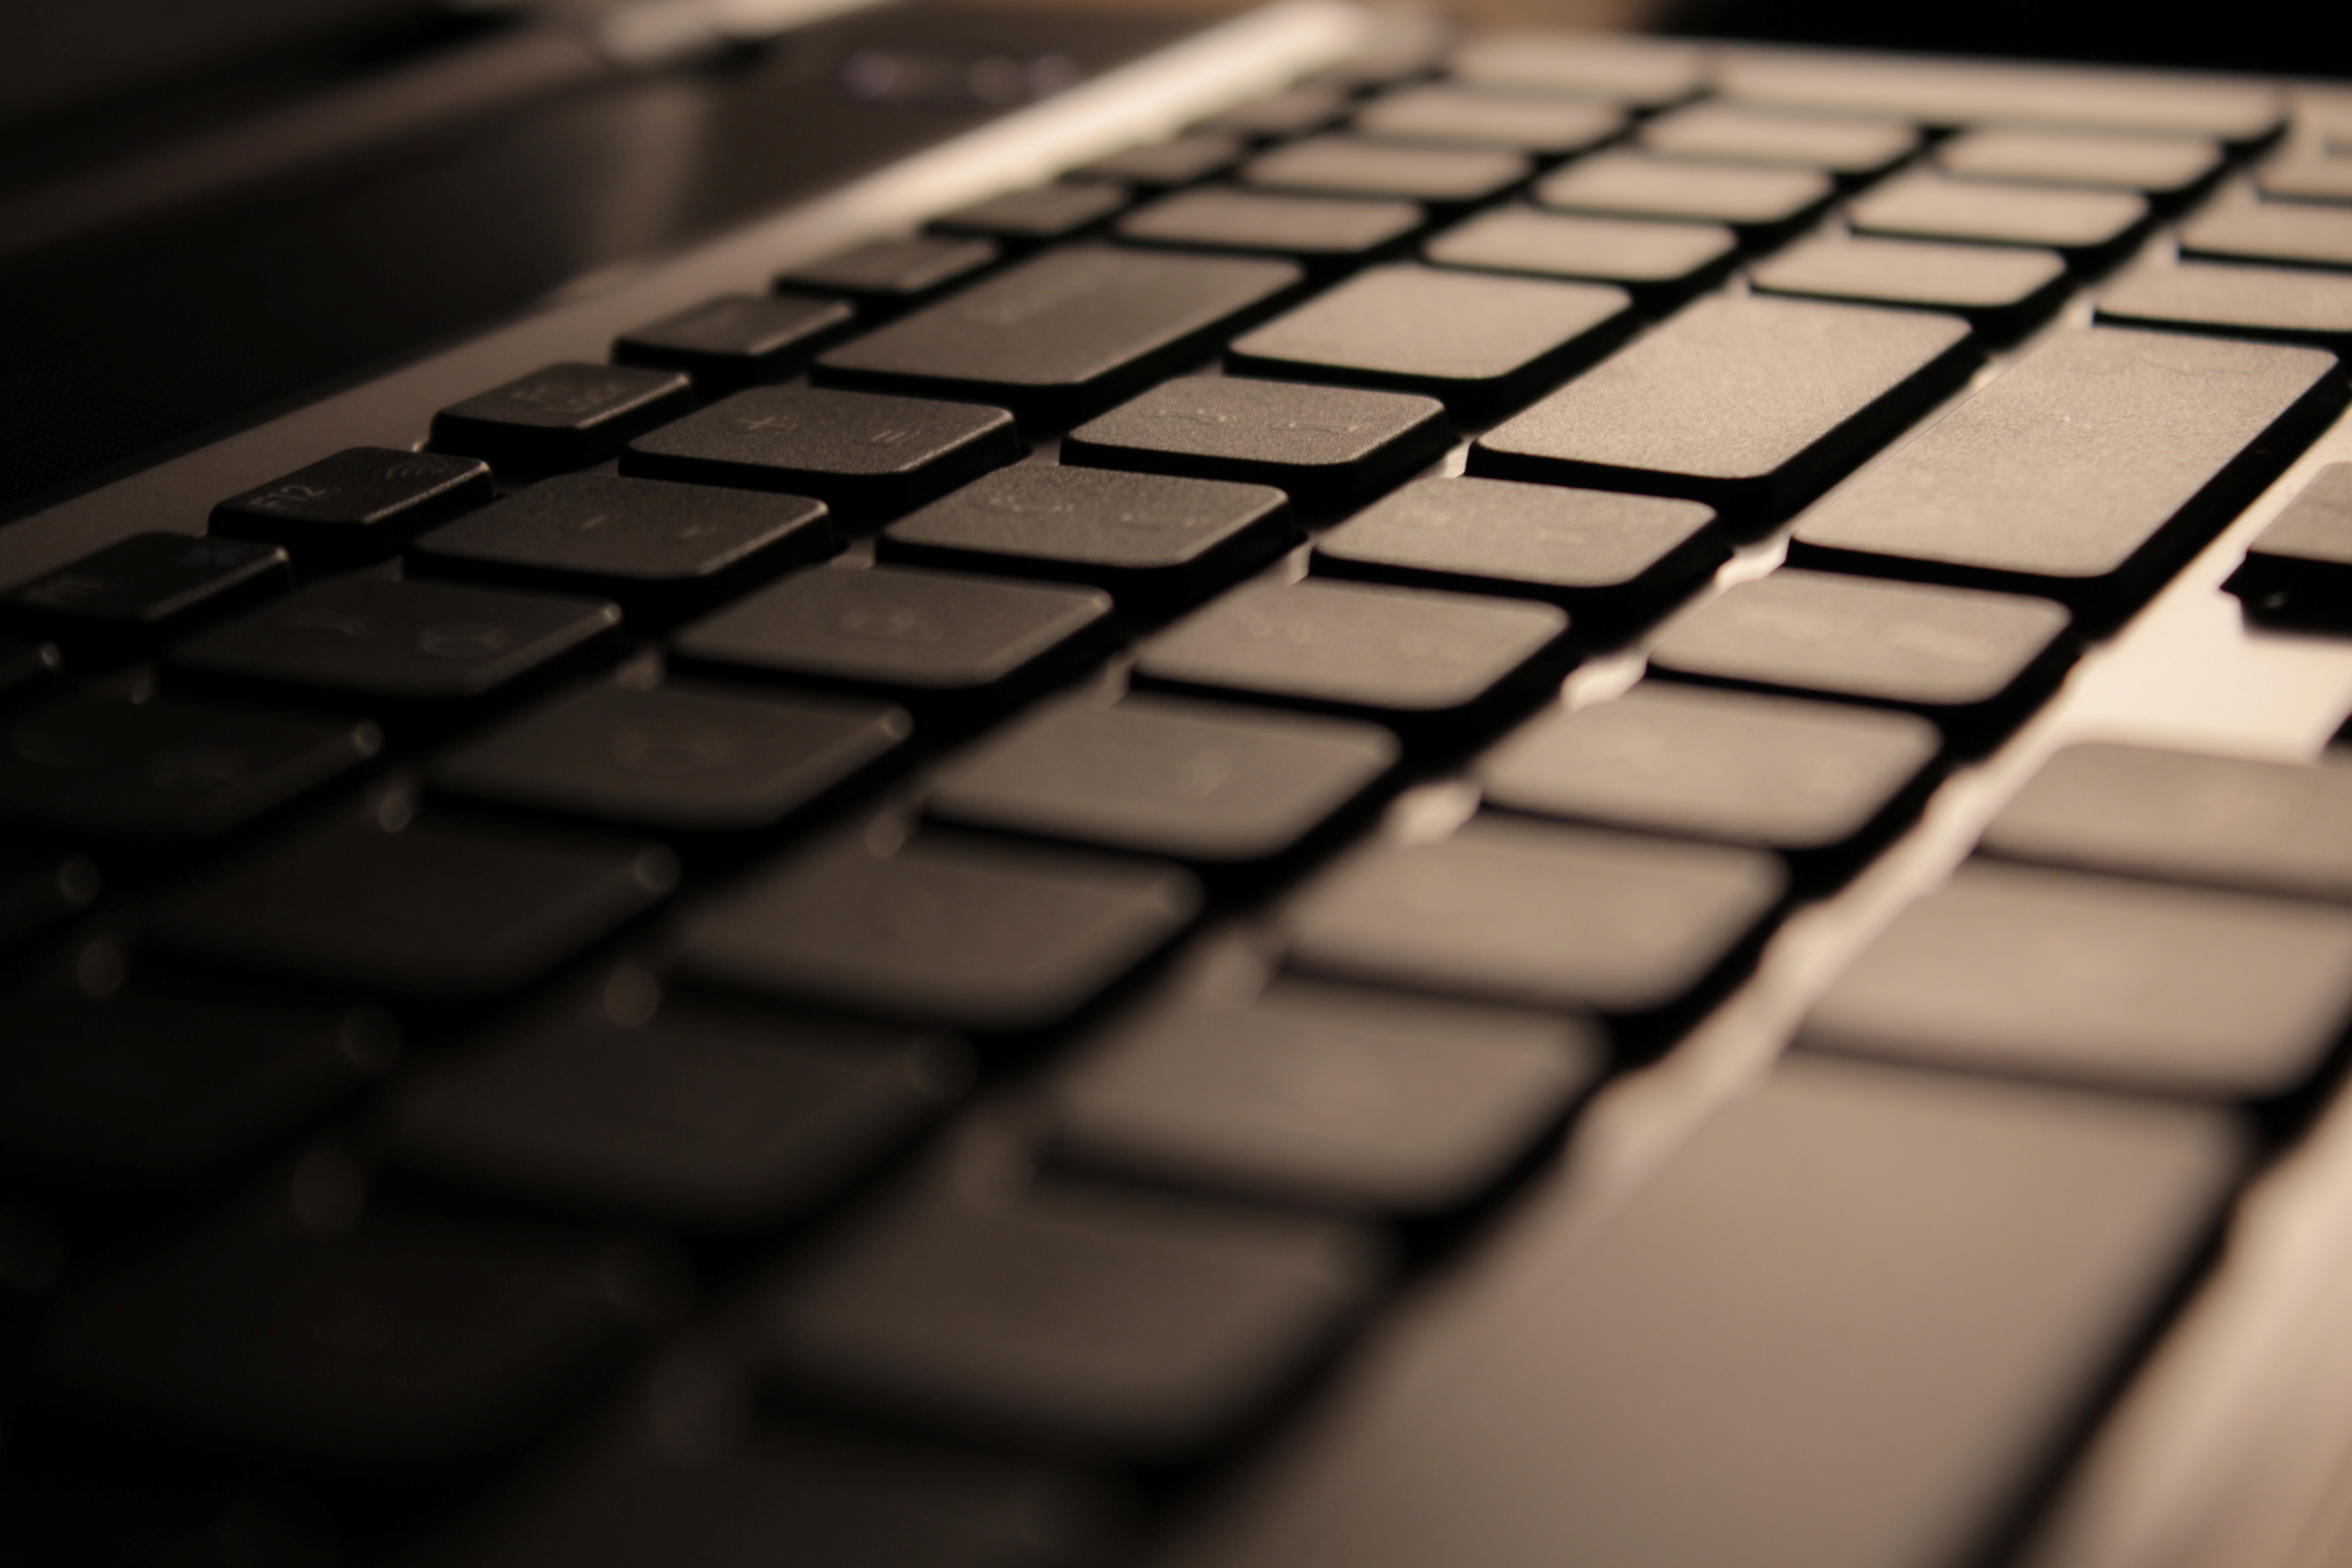 Classic laptop keyboard with black buttons shot in dark, warm scenery.